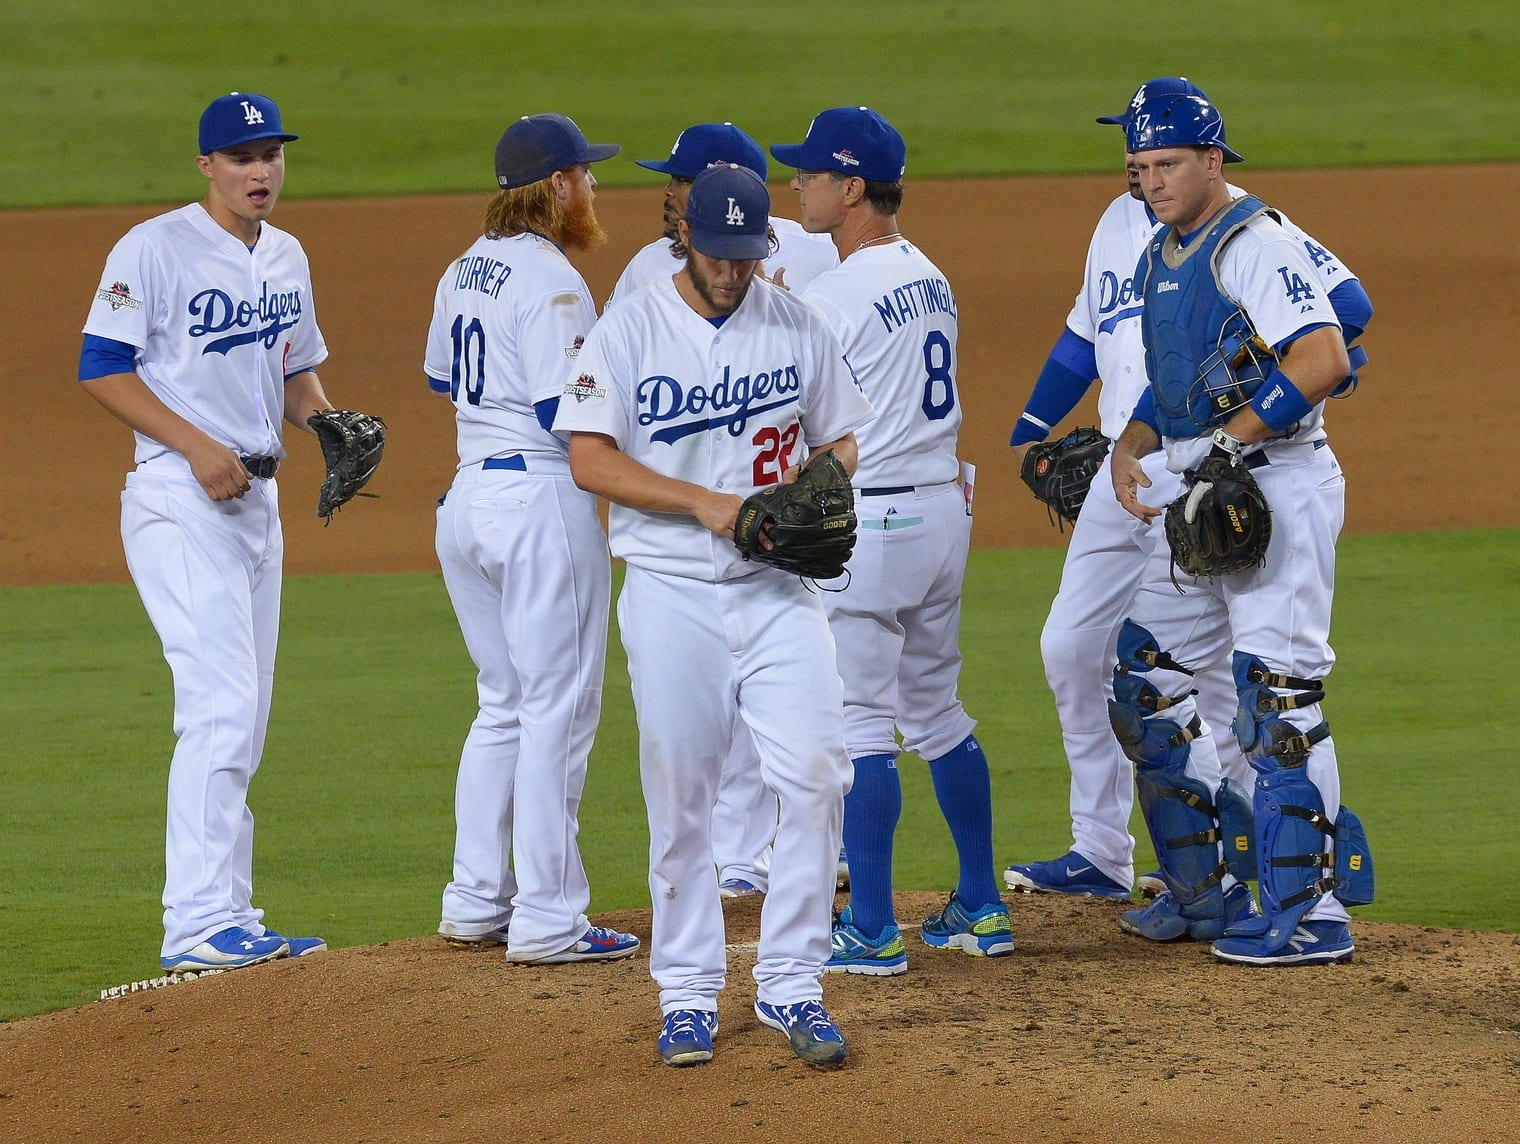 A.J. Ellis, Clayton Kershaw, Don Mattingly